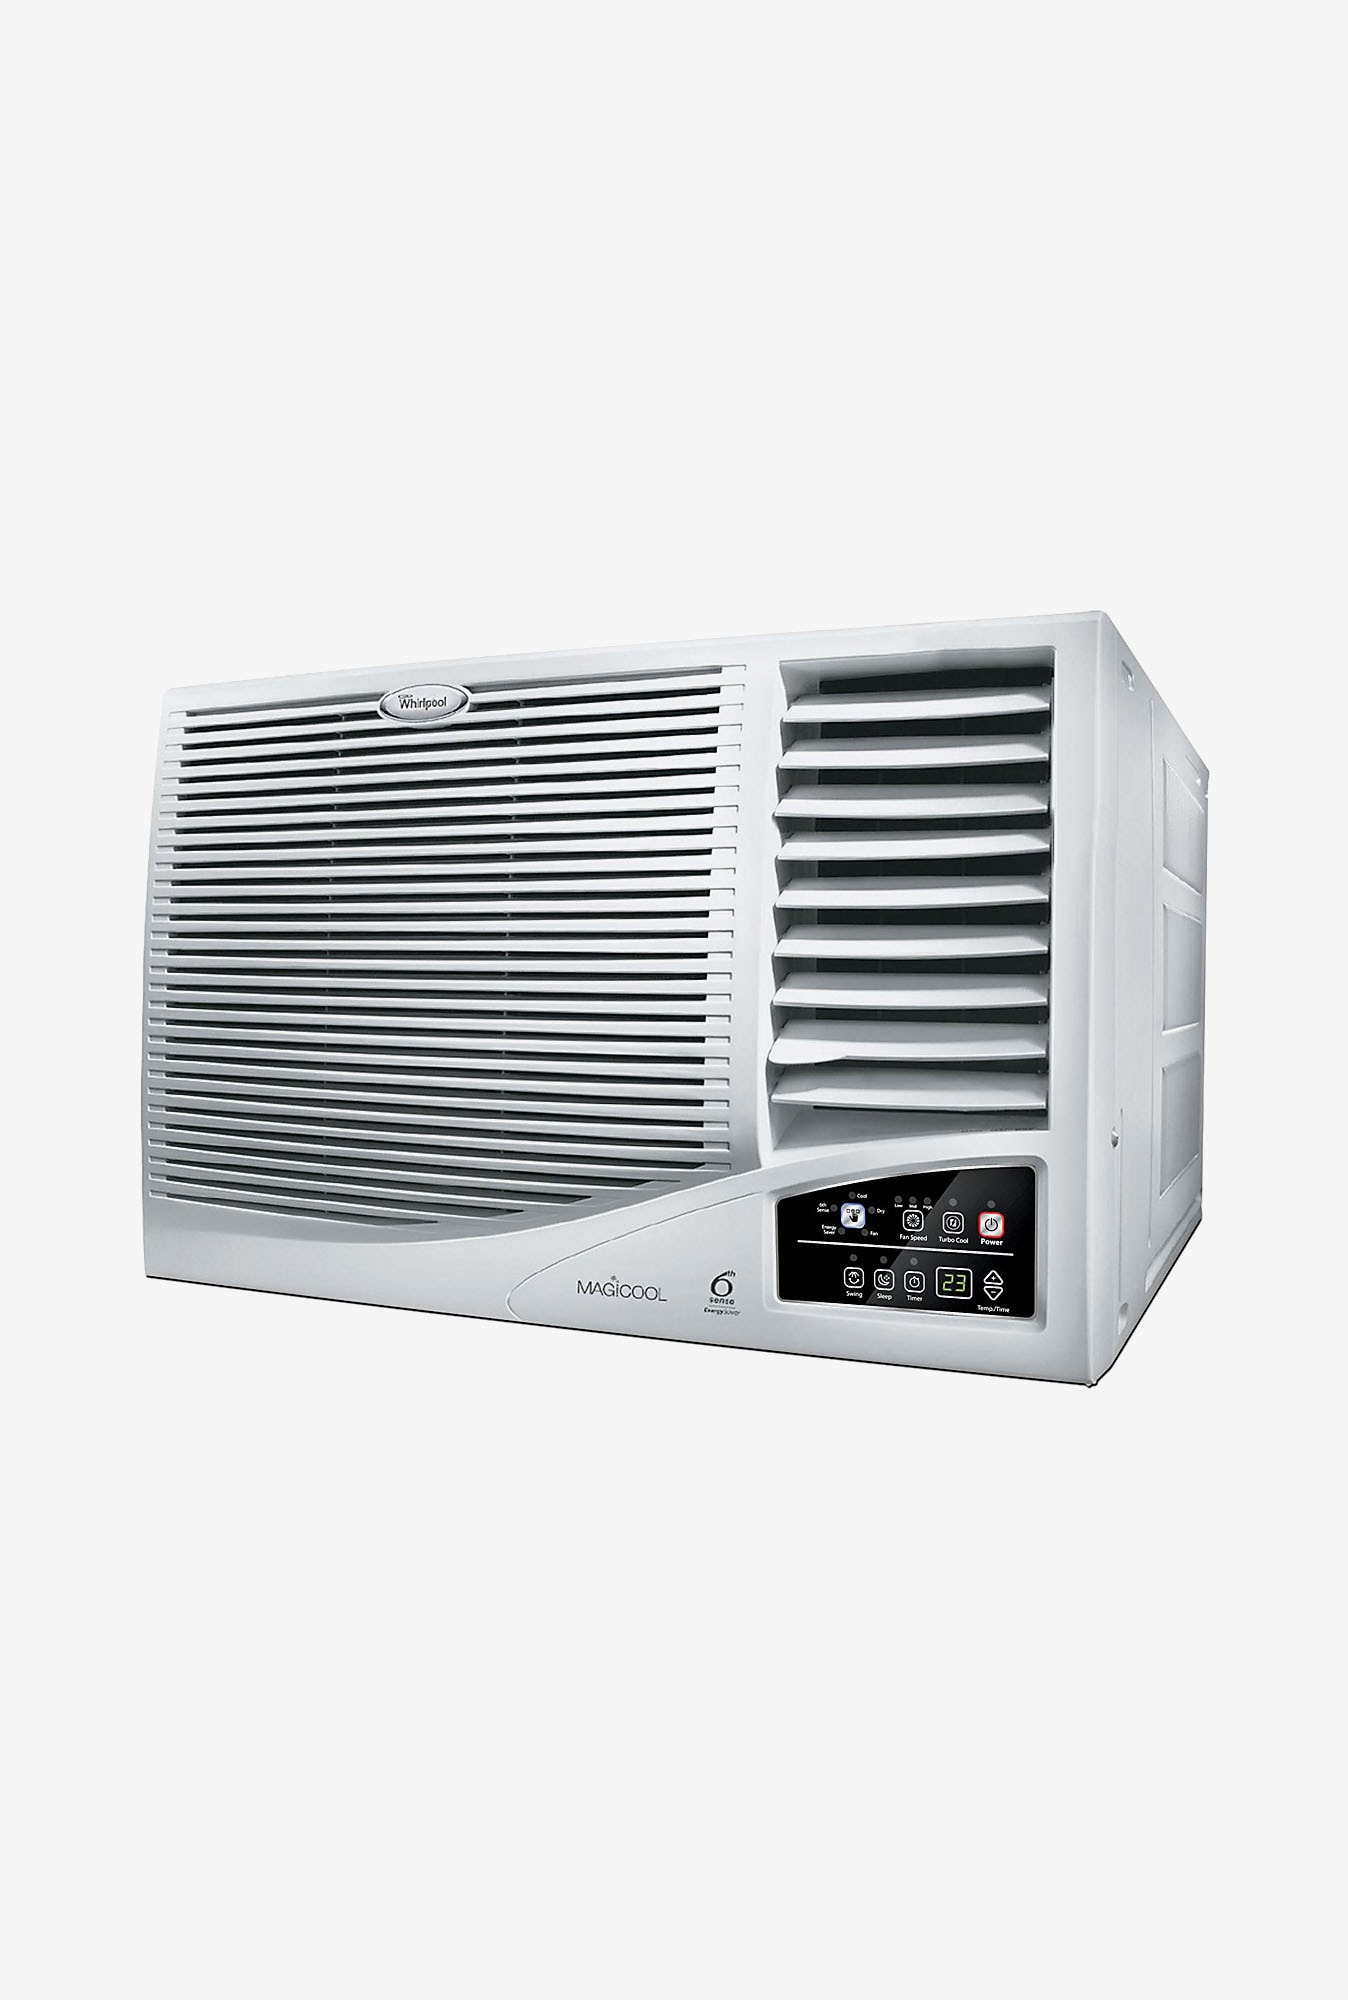 #733E3F Deals On The 5 Best 1 Ton Air Conditioners For The Summer  Best 4823 Inverter Window Ac photos with 1348x2000 px on helpvideos.info - Air Conditioners, Air Coolers and more